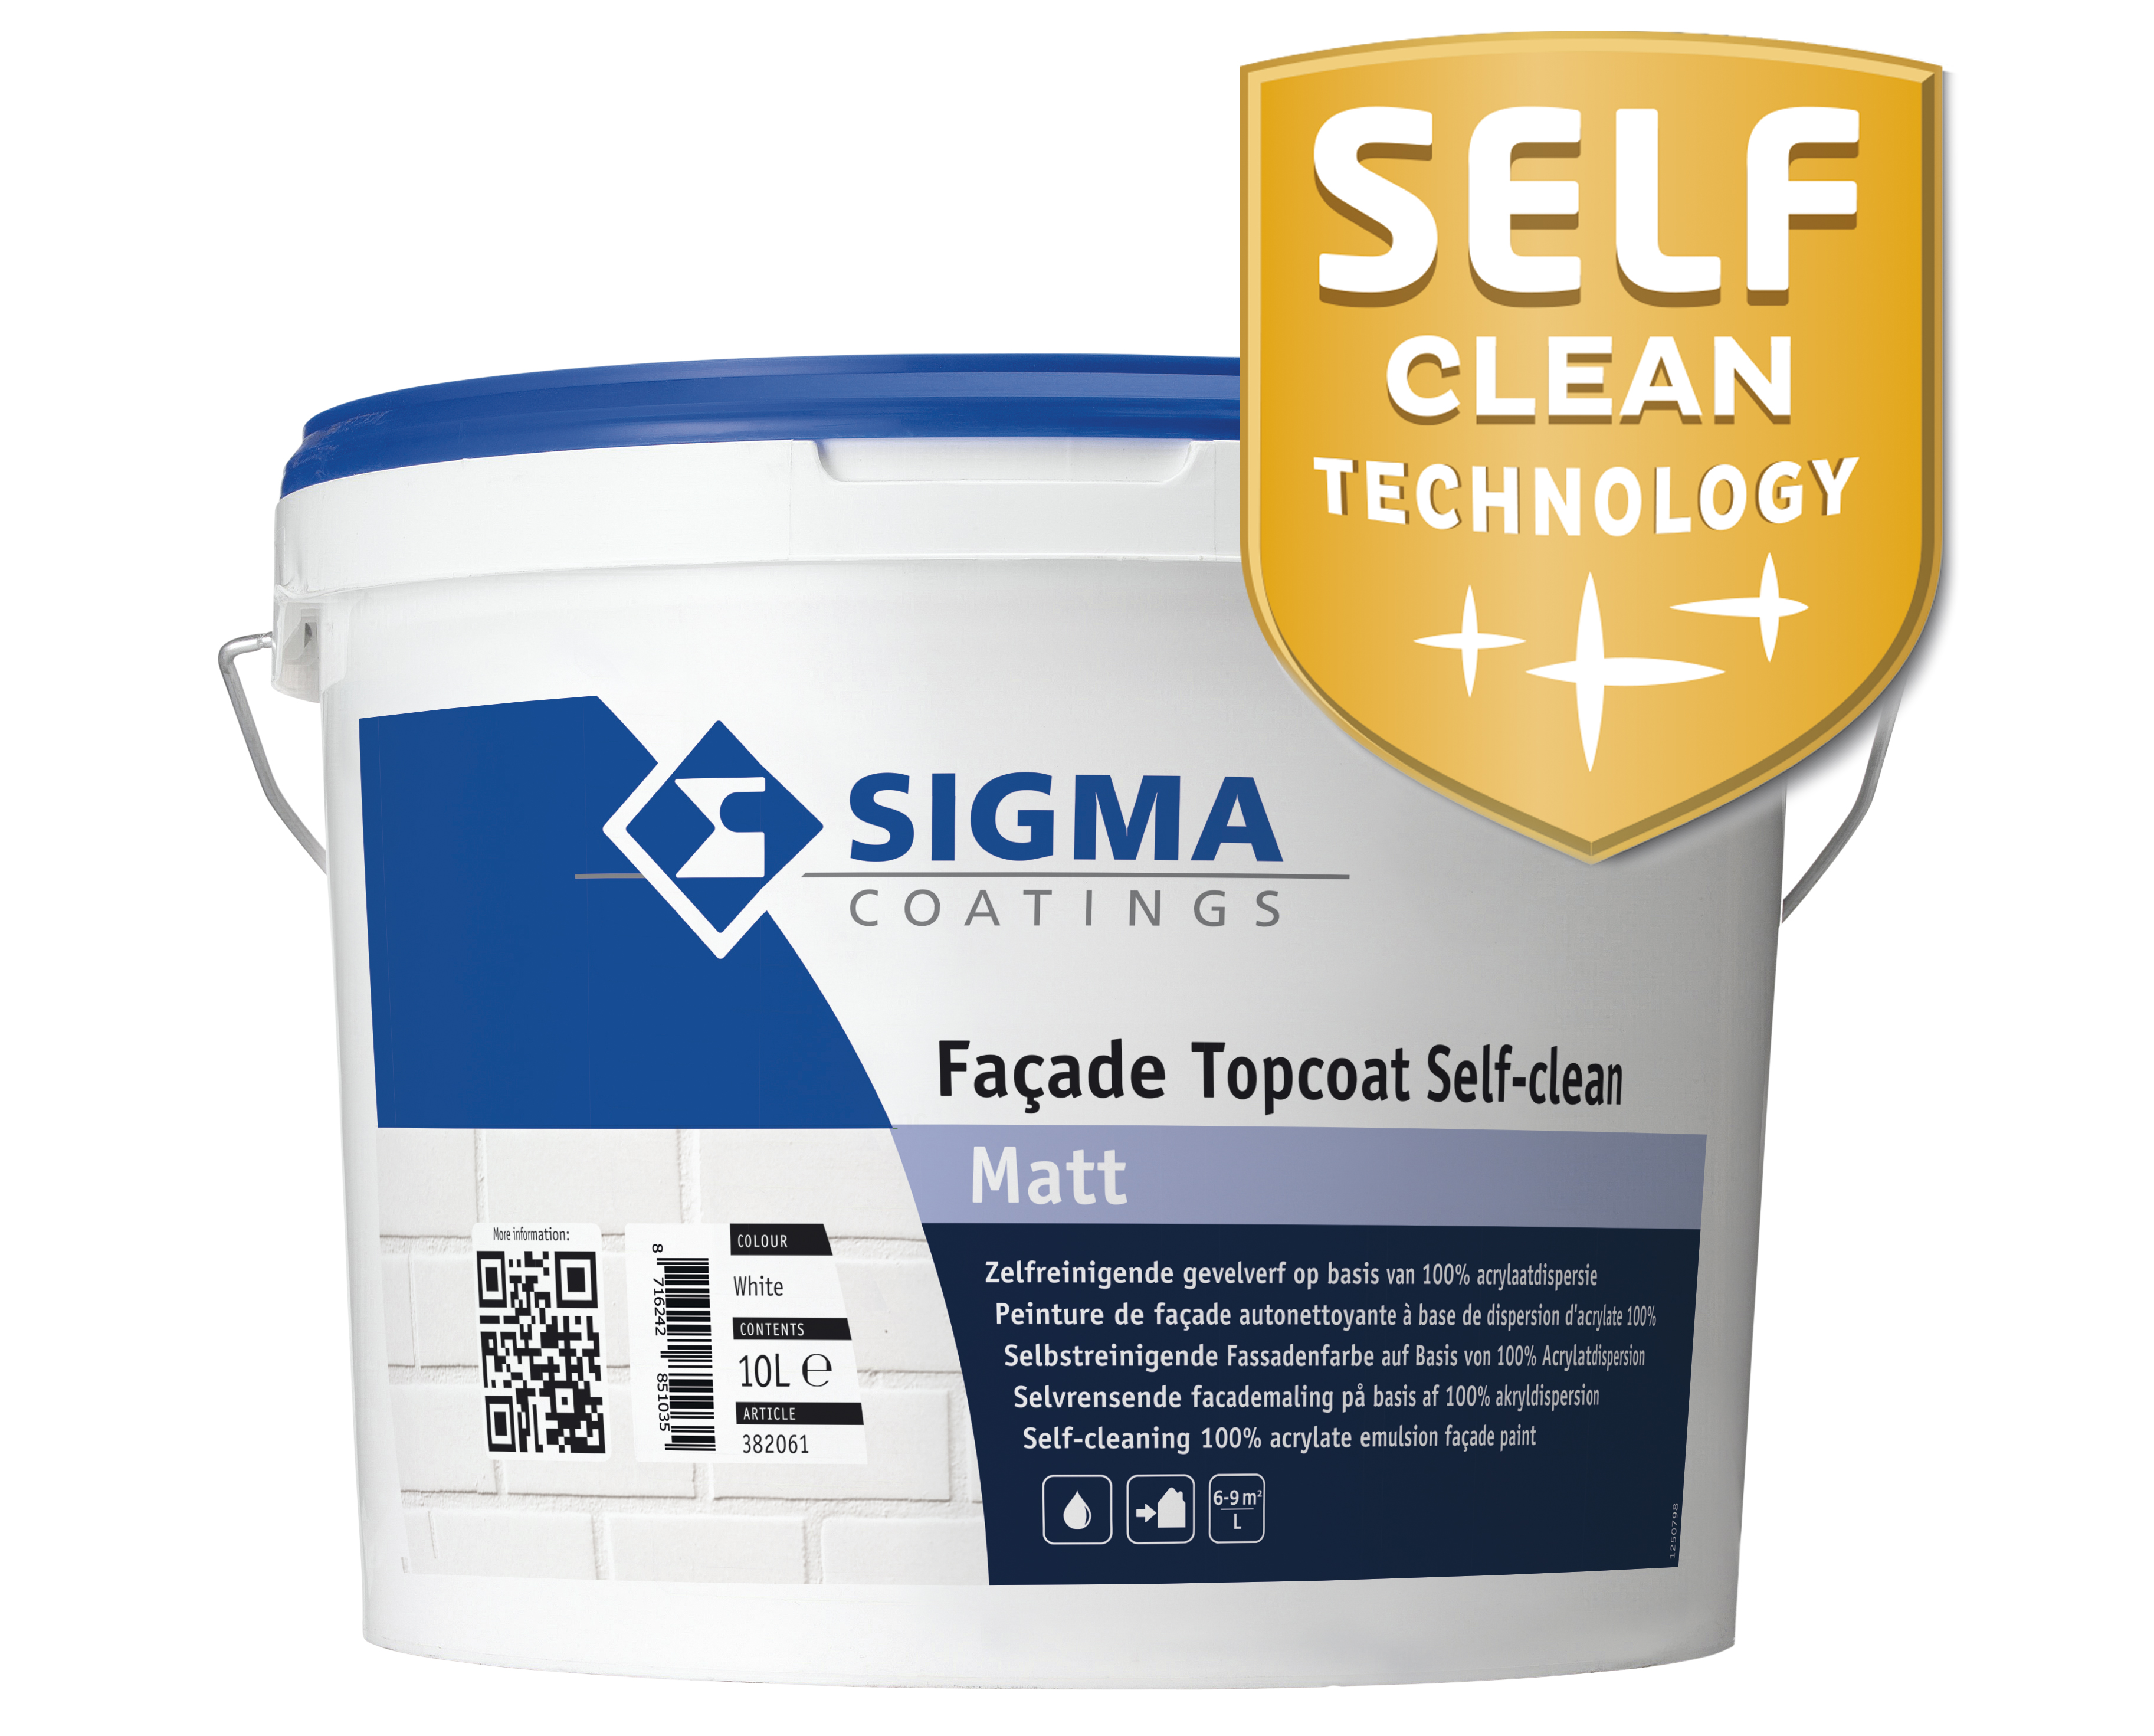 Sigma Façade Topcoat Self-Clean